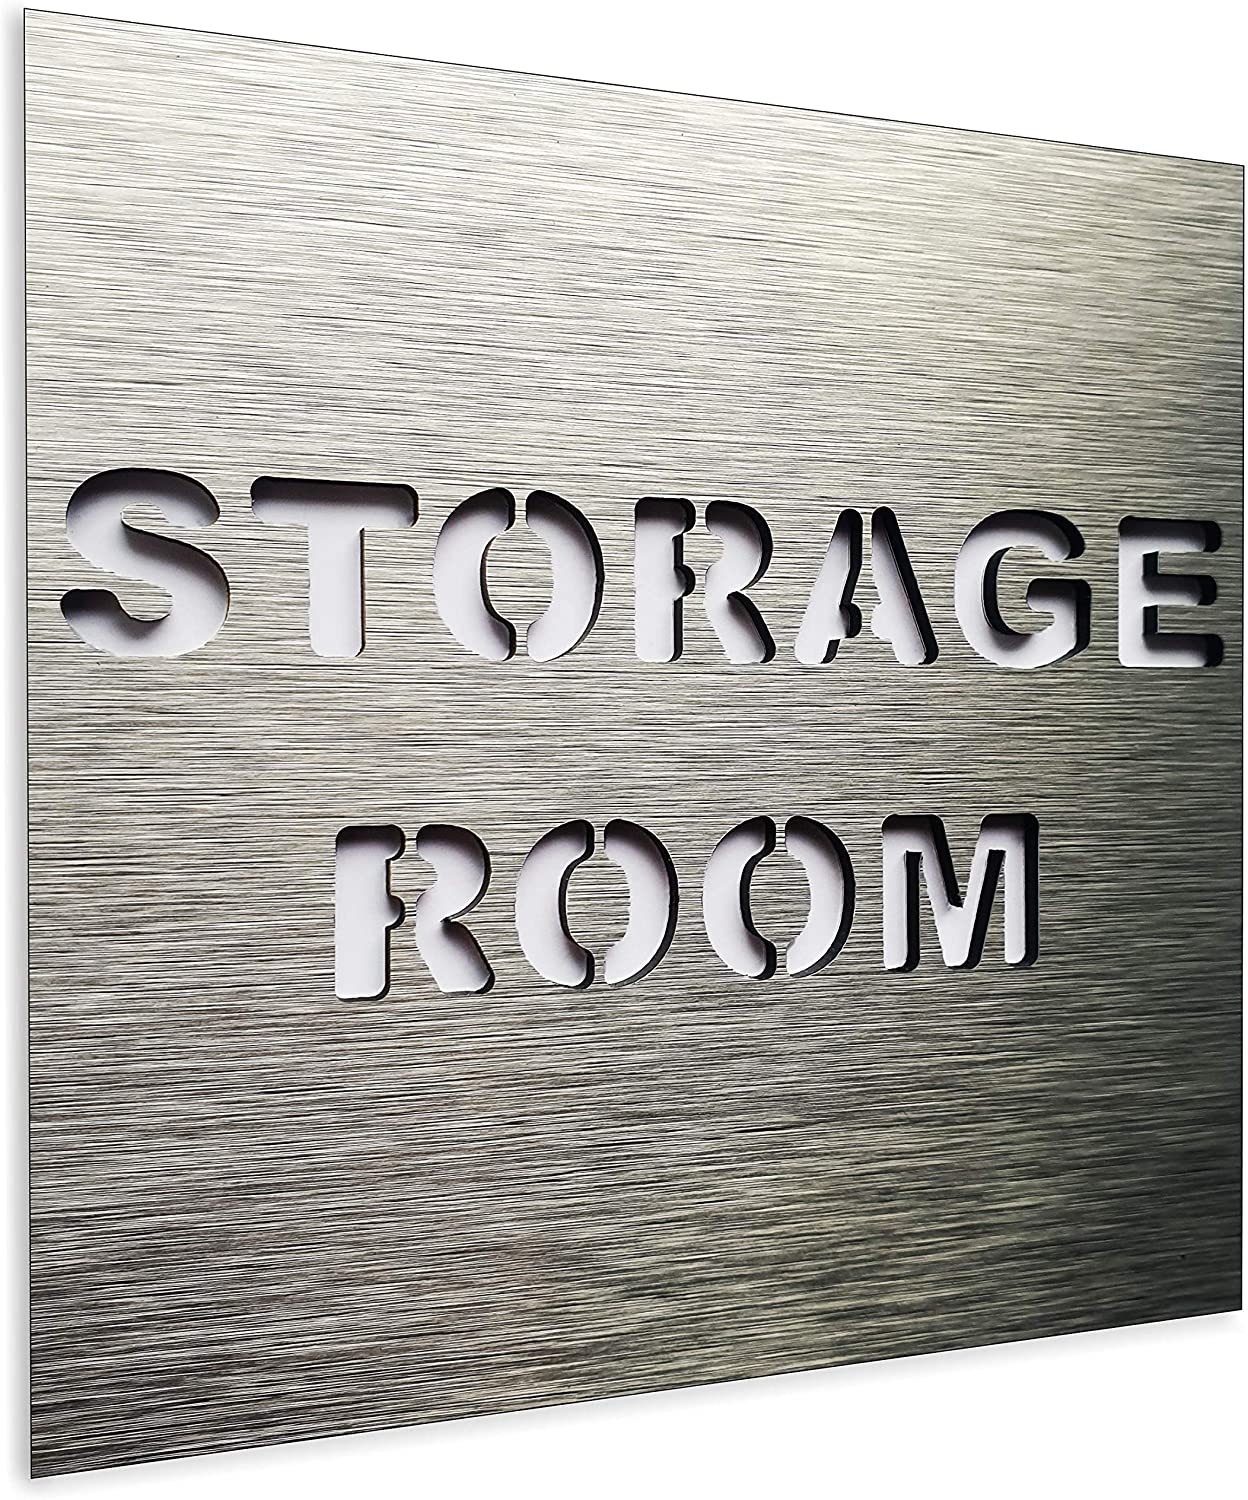 BSYDESIGN Aluminium Storage Room Sign - Warehouse Modern Door Signage - Sign for Business - Office Room Plaque - Indoor & Outdoor - Stowage Plaque - Store Sign - Storehouse